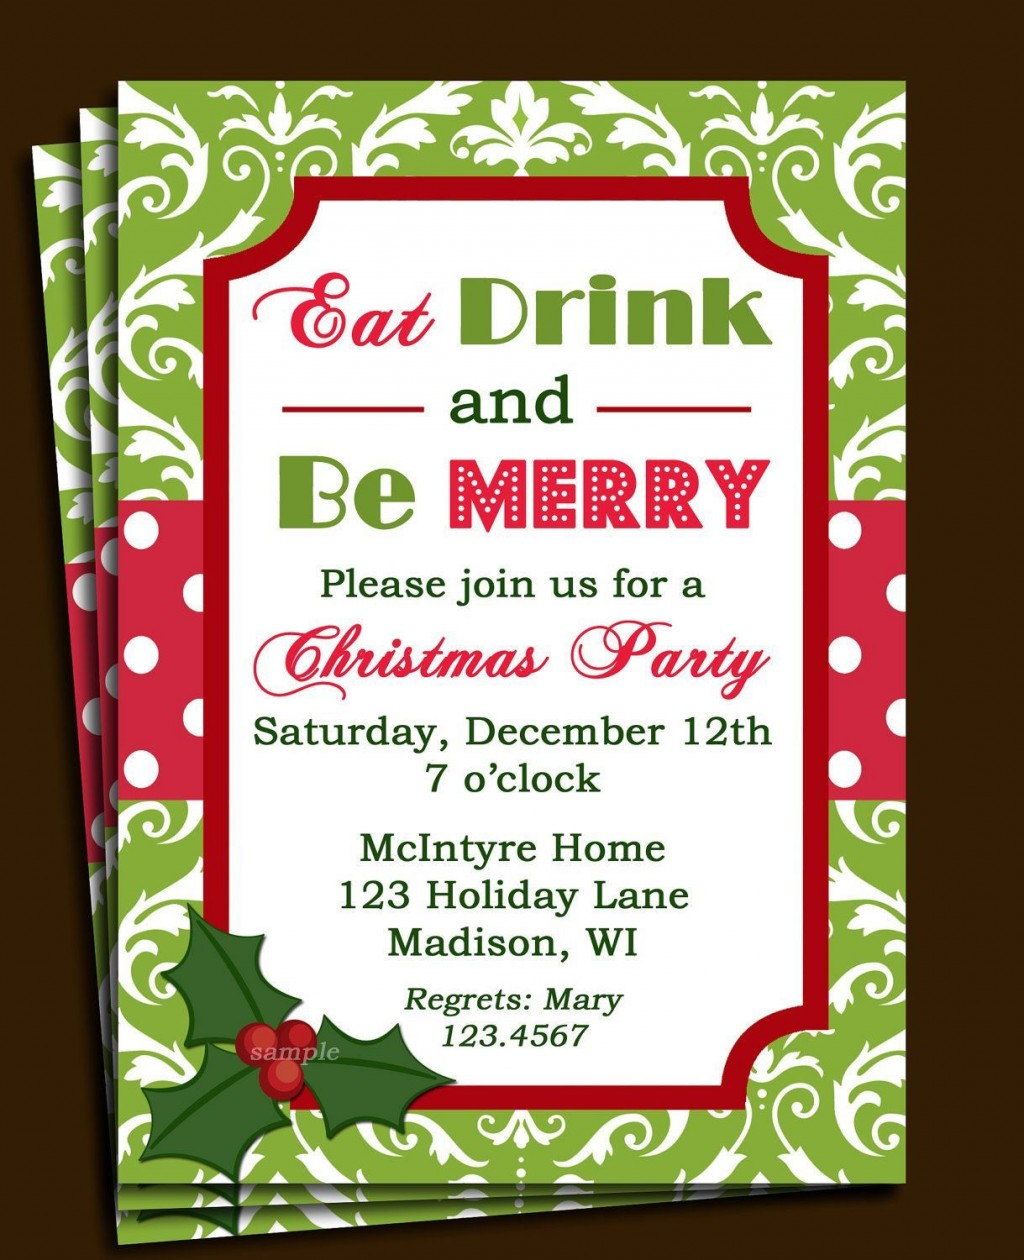 005 Marvelou Office Christma Party Invitation Wording Sample Design  Holiday ExampleLarge